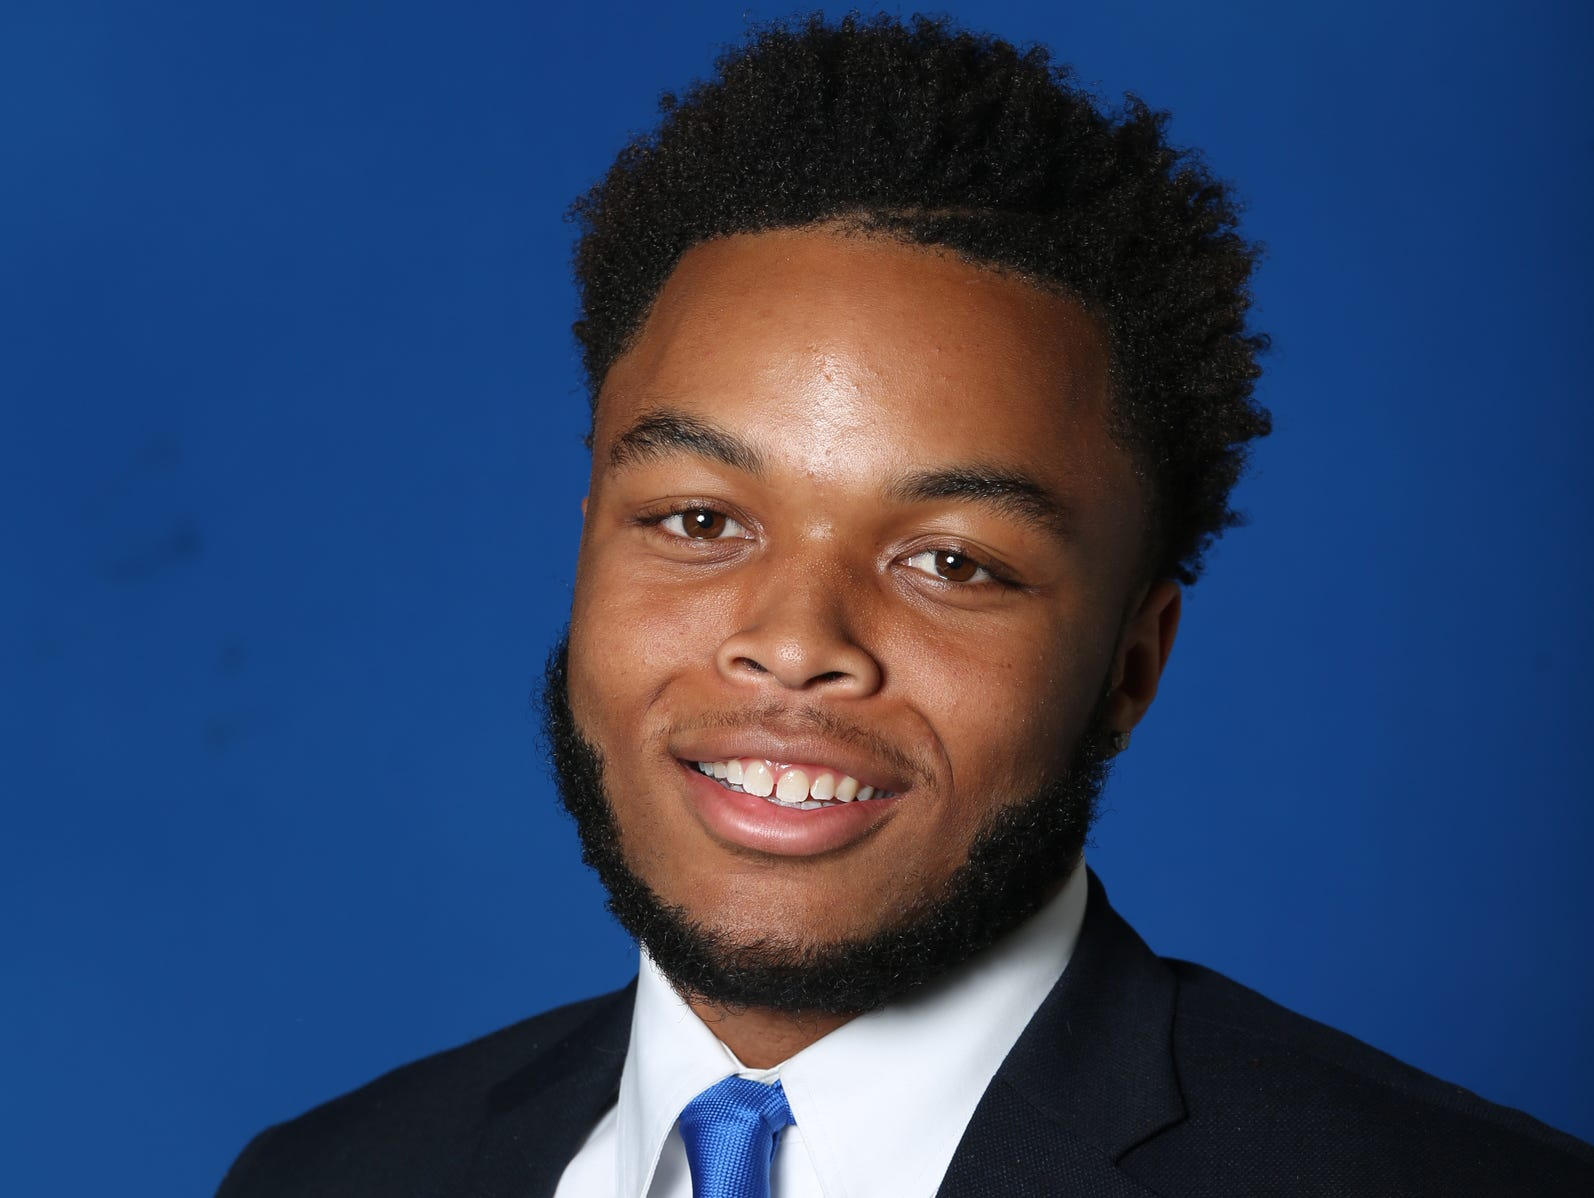 Redshirt freshman linebacker Roland Walder is transferring from UK without ever playing a game for the Wildcats.